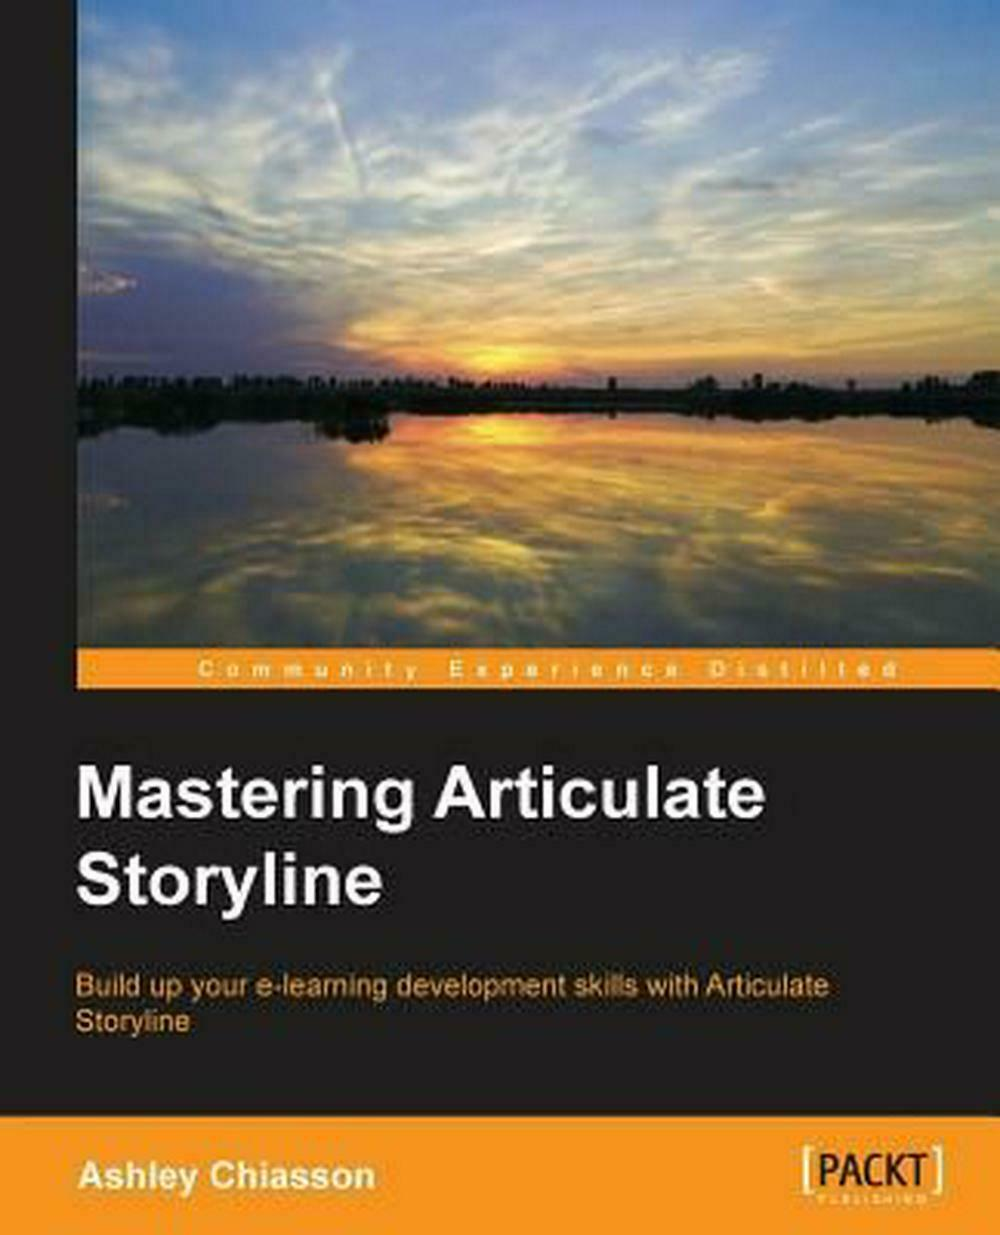 Mastering Articulate Storyline by Ashley Chiasson (English) Paperback Book Free |